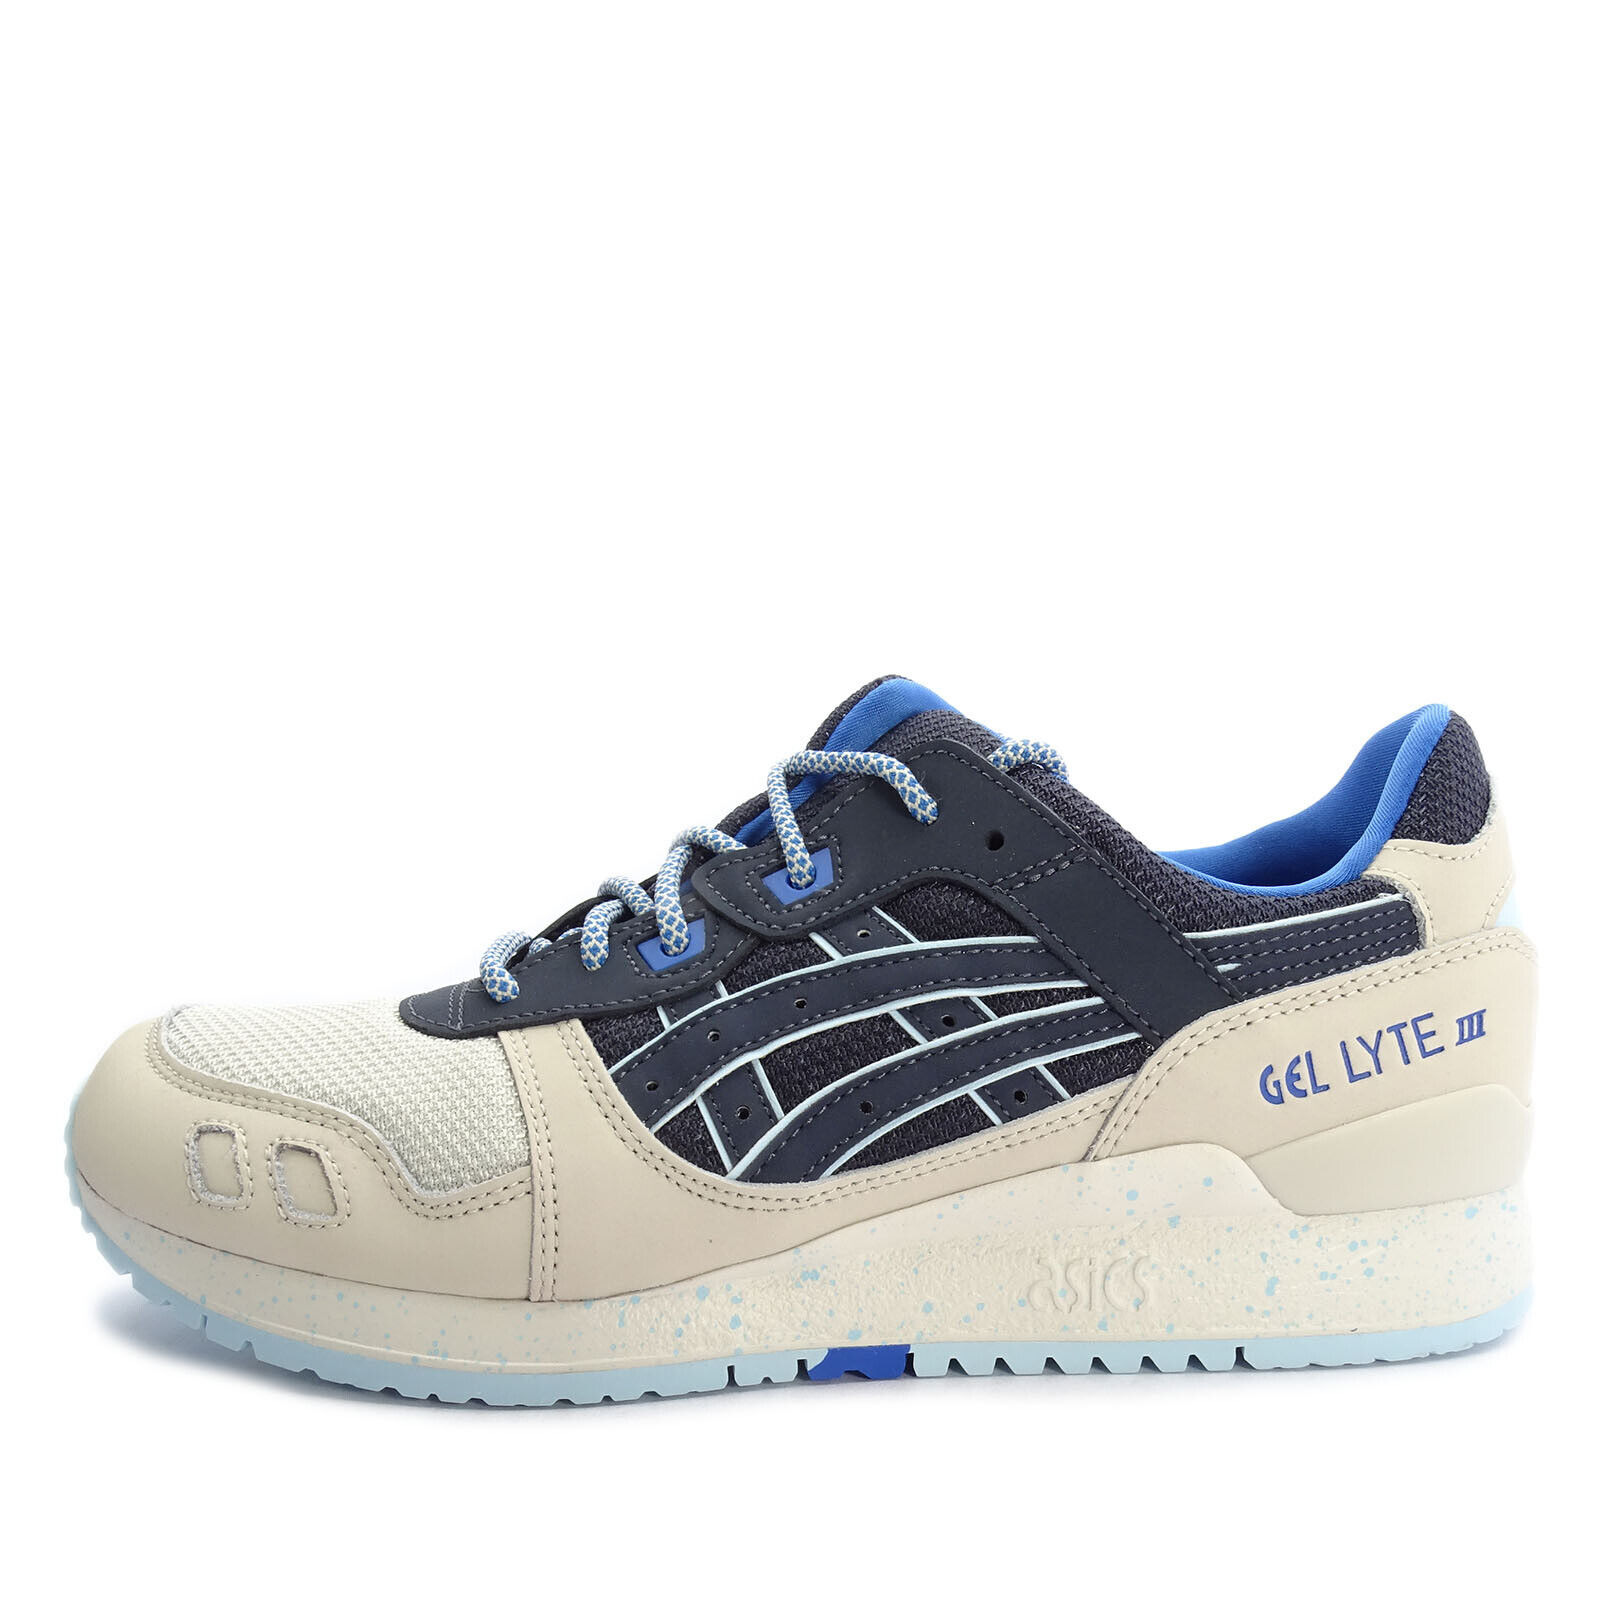 Asics Tiger GEL-Lyte III [H7L0L-5858] Men Casual Shoes India Ink/Sail US 9.0